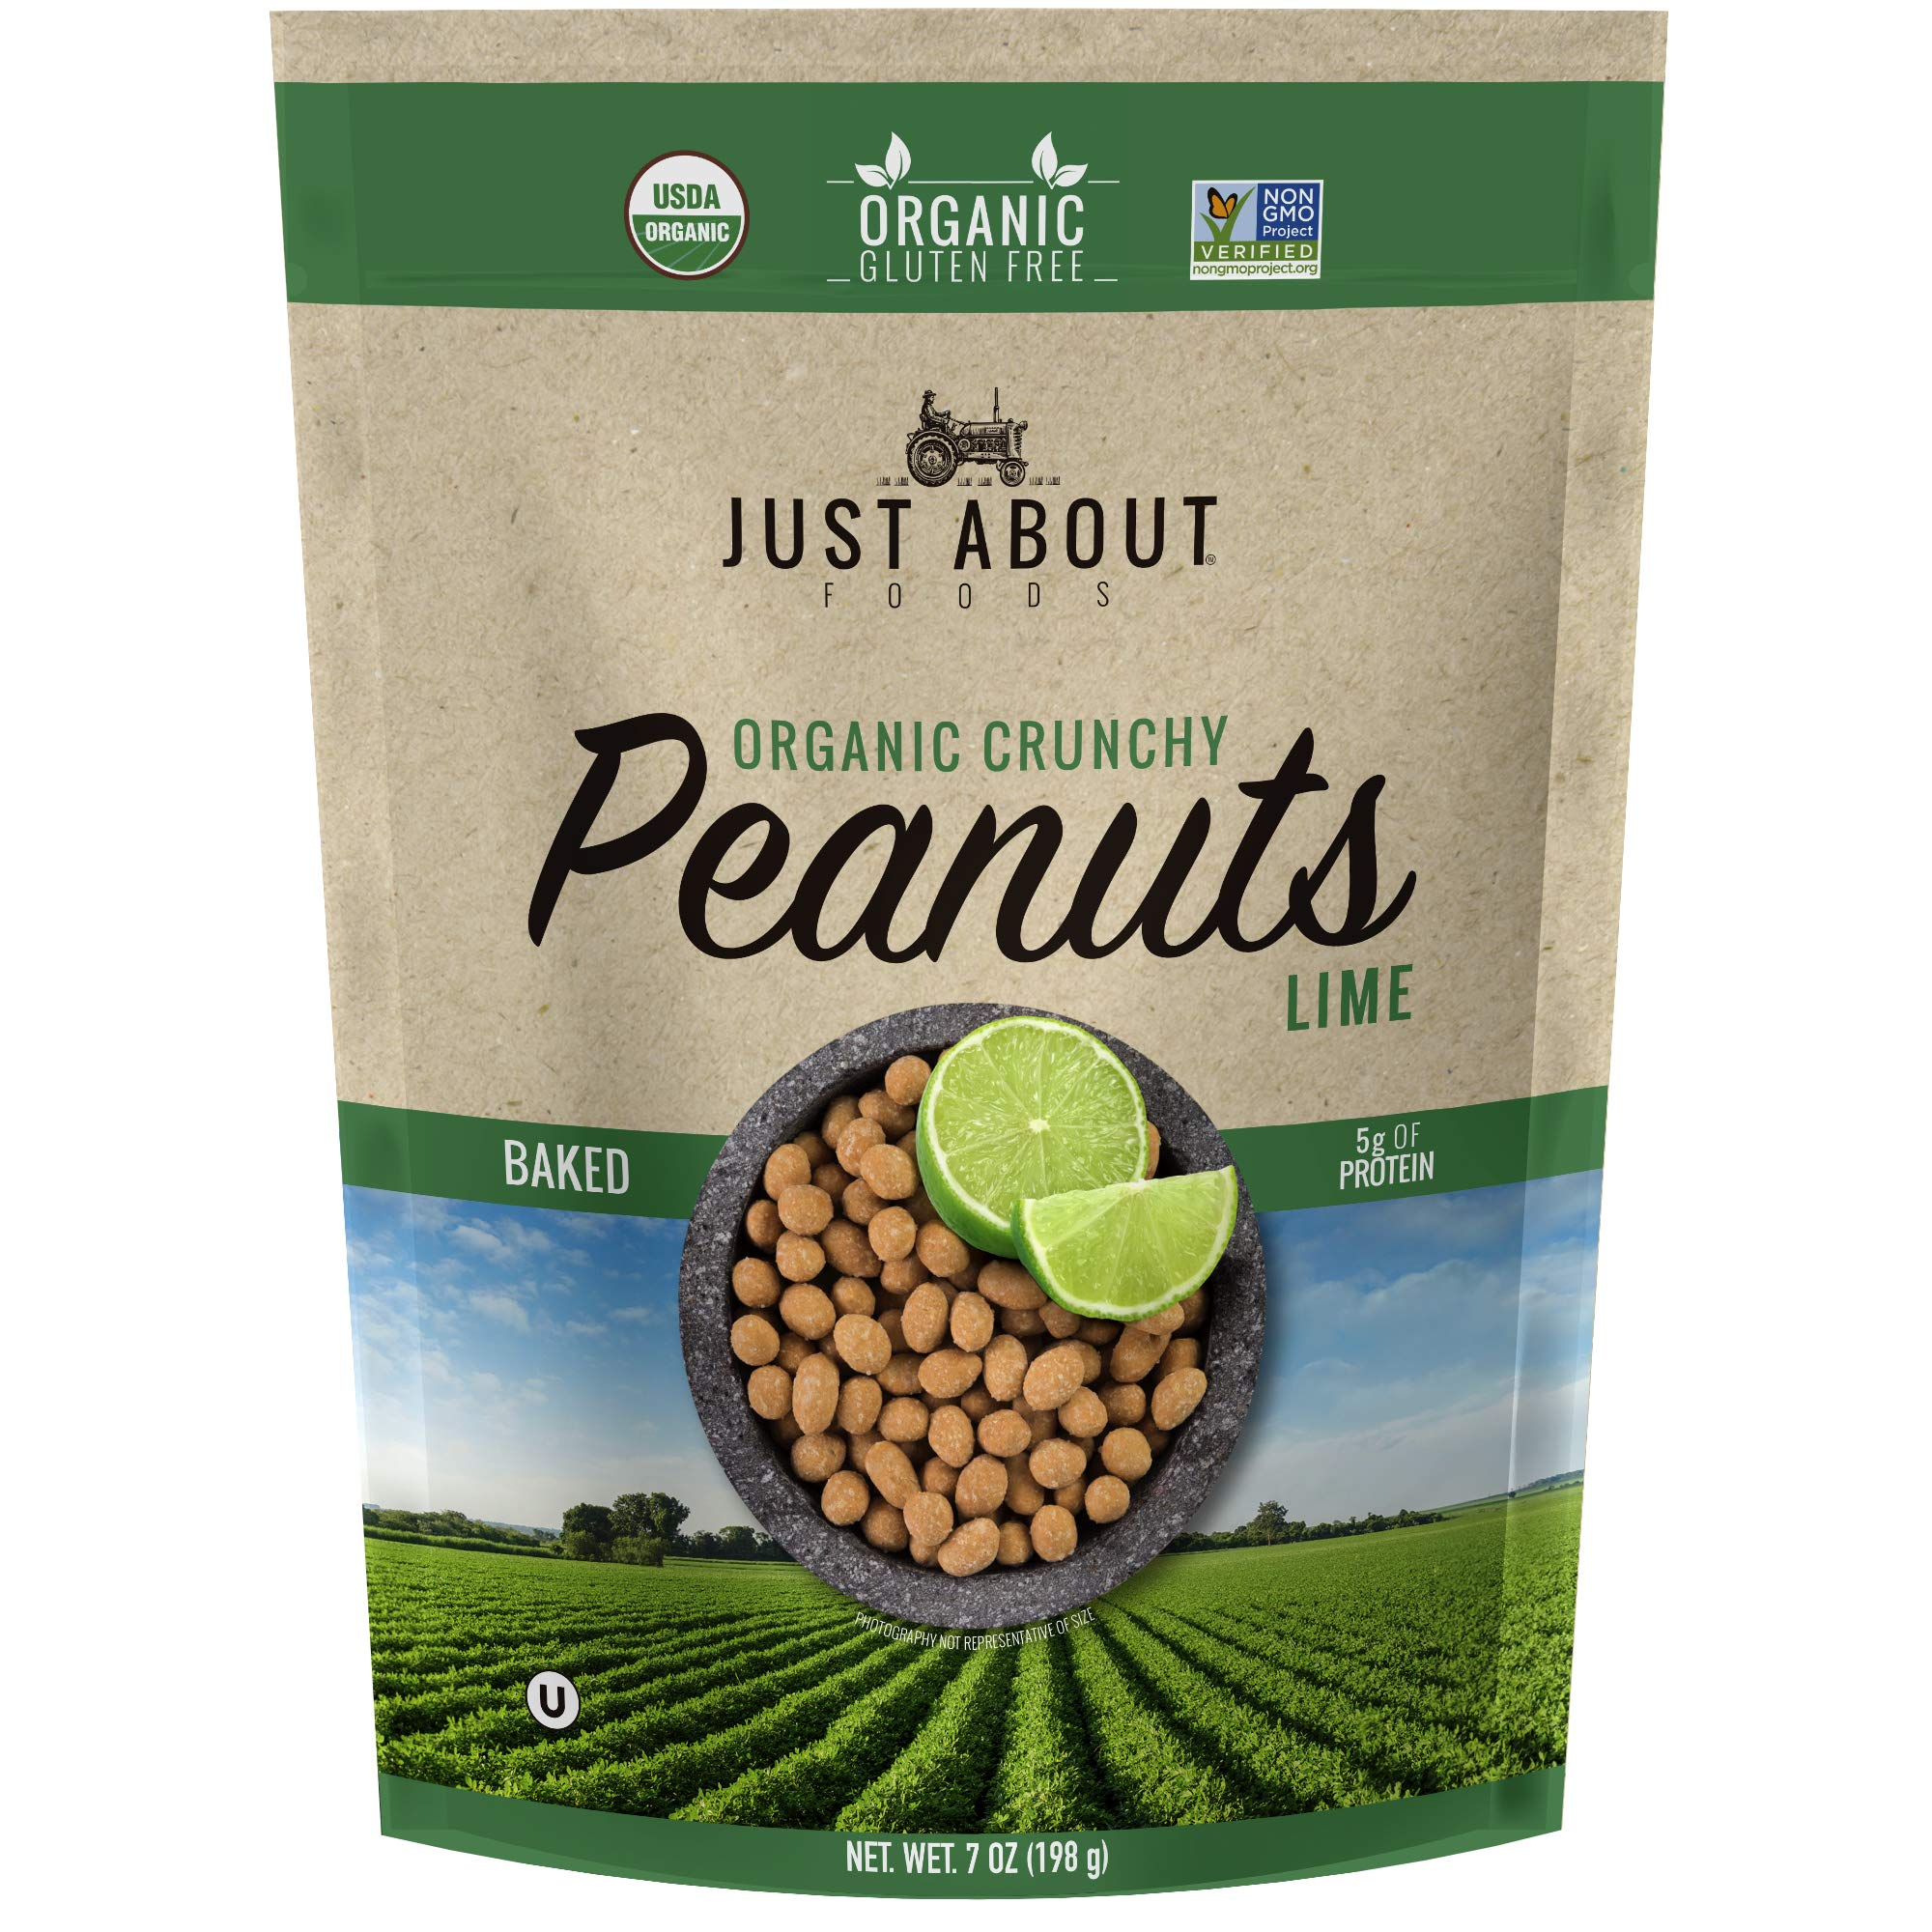 Organic Crunchy Peanuts Lime 7 oz. (198g) Just About Foods